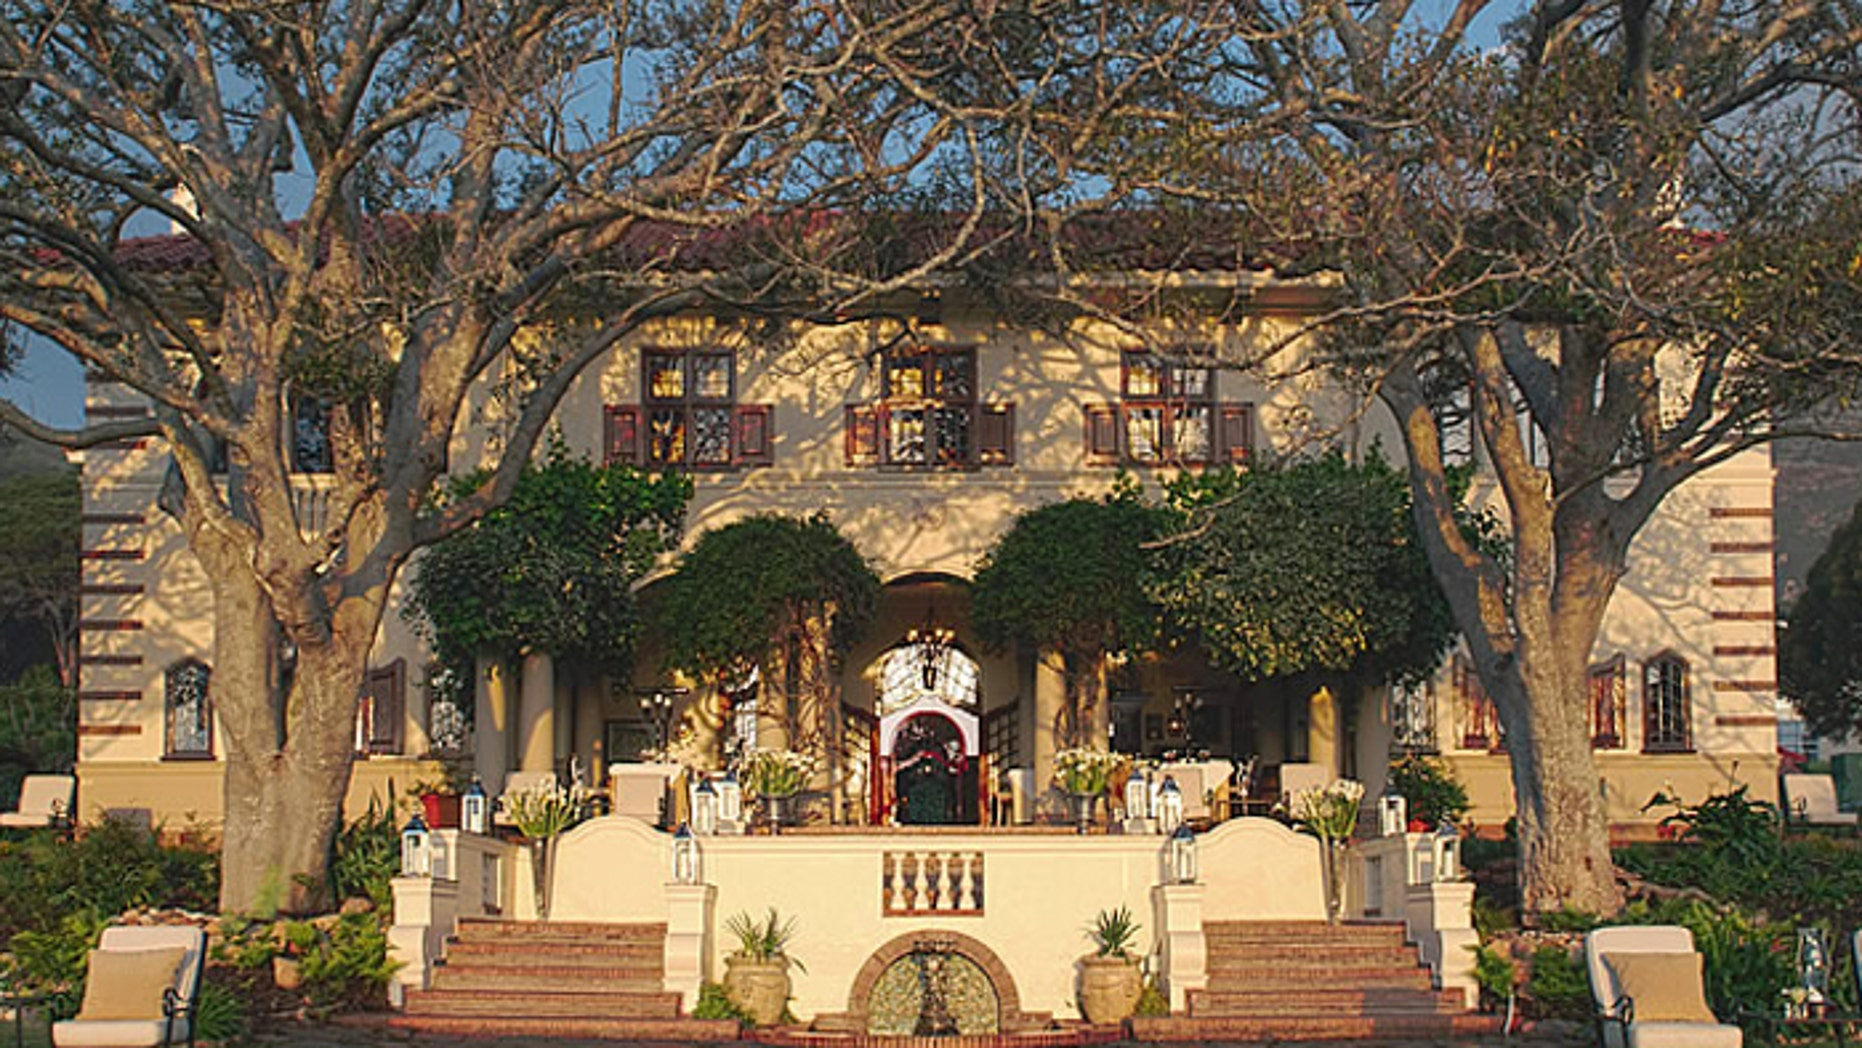 Camps Bay Retreat is a luxury boutique hotel in Cape Town. (CometoCapeTown.com)